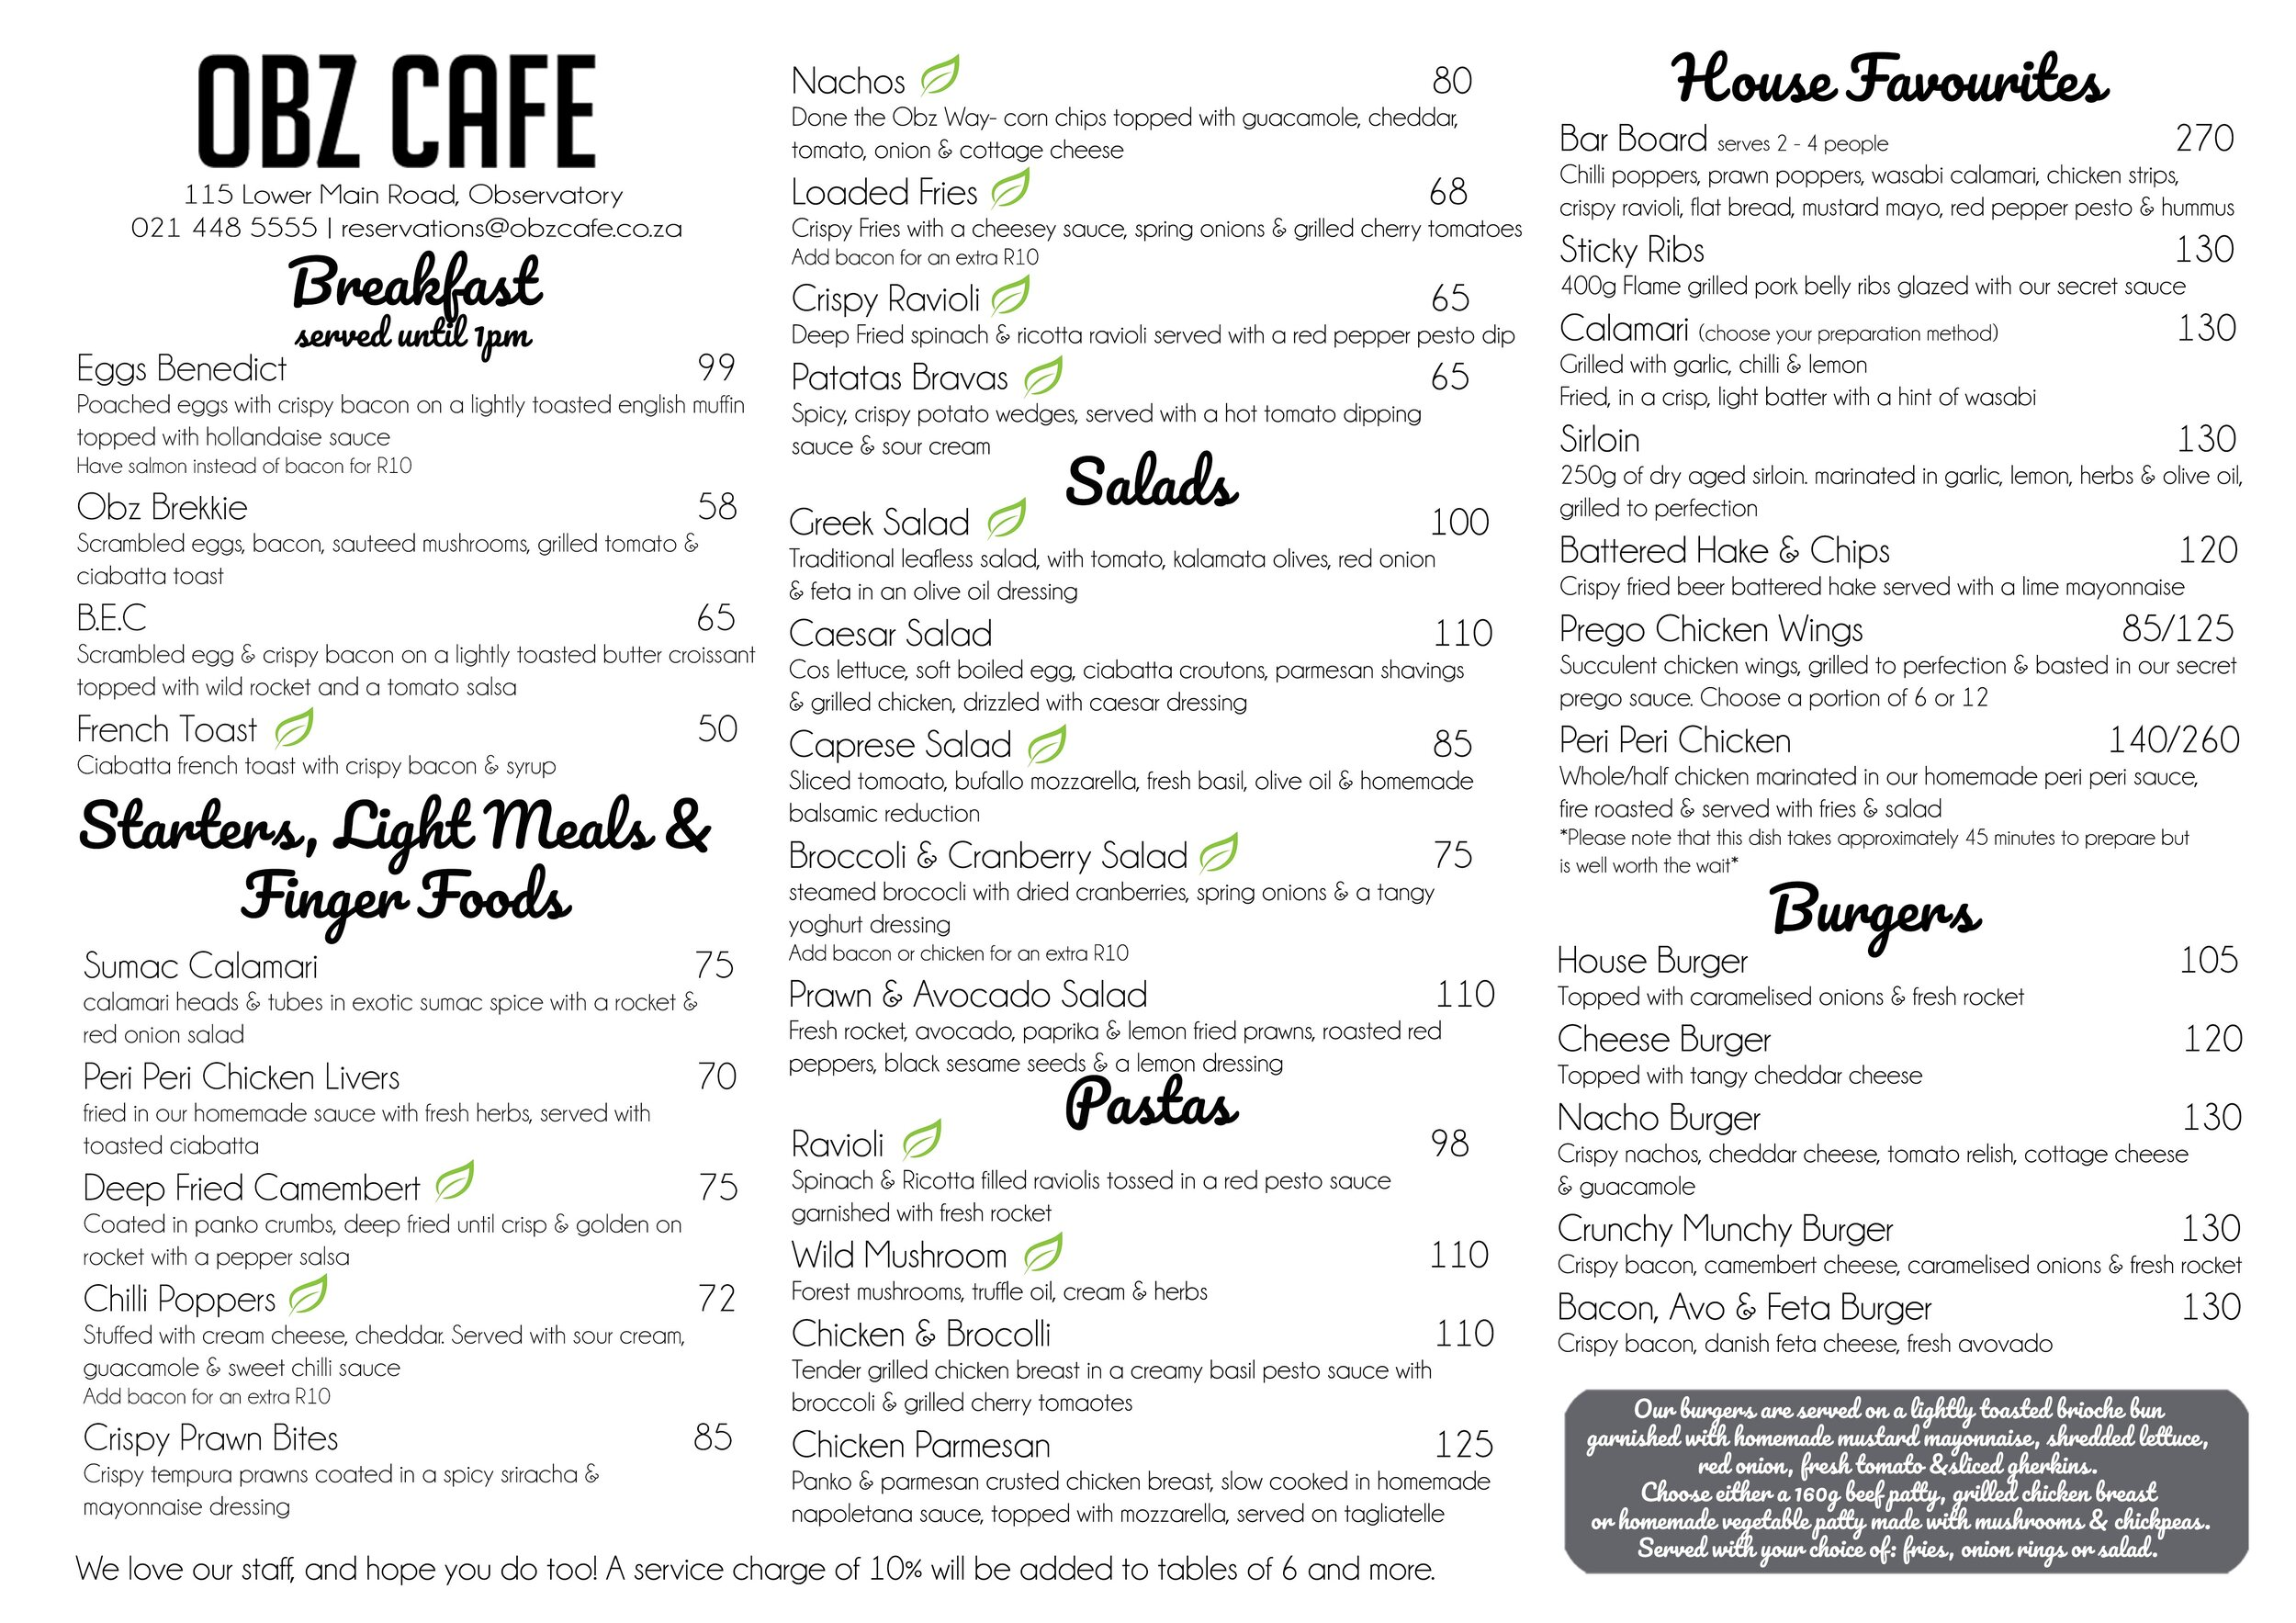 Obz Cafe Menu FRONT Oct 2019.jpg